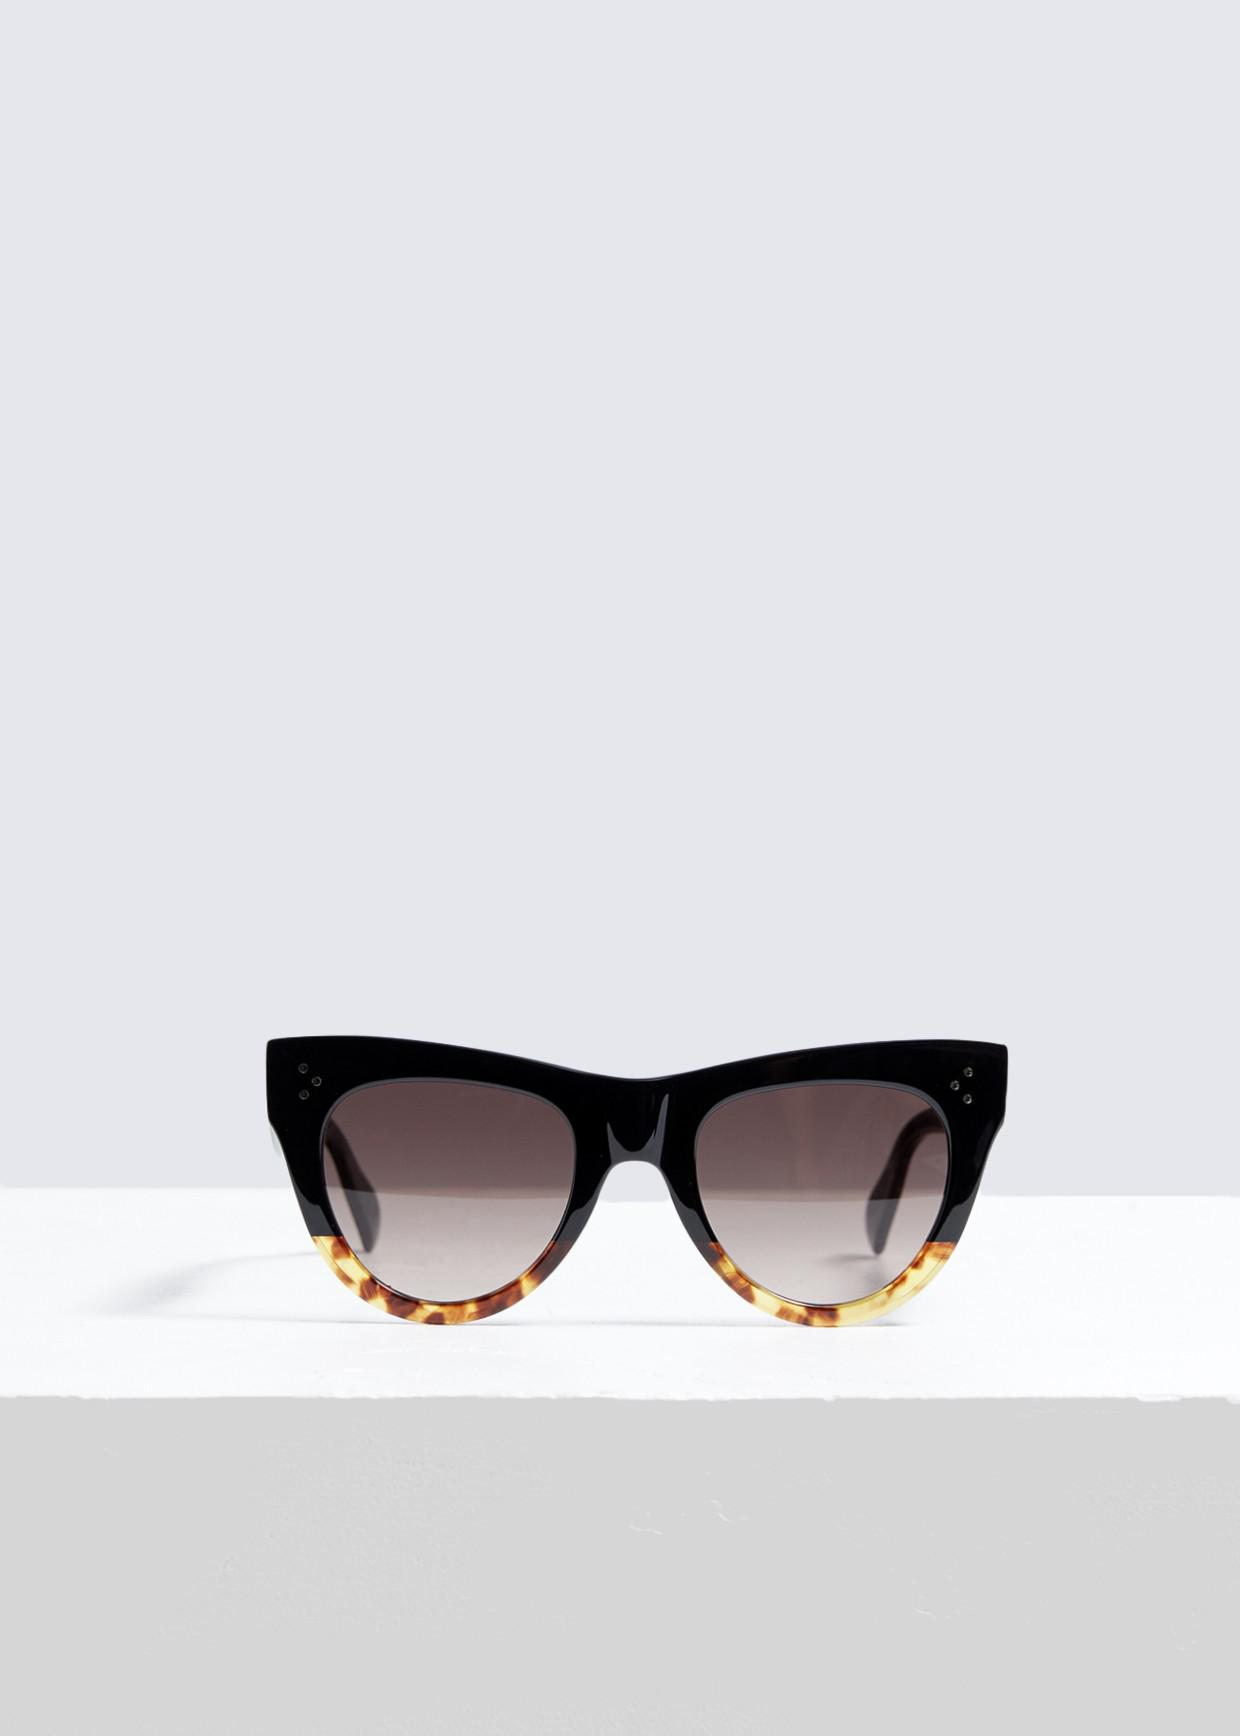 f7497e92d39b Céline Square Cat-eye Sunglasses in Black - Lyst